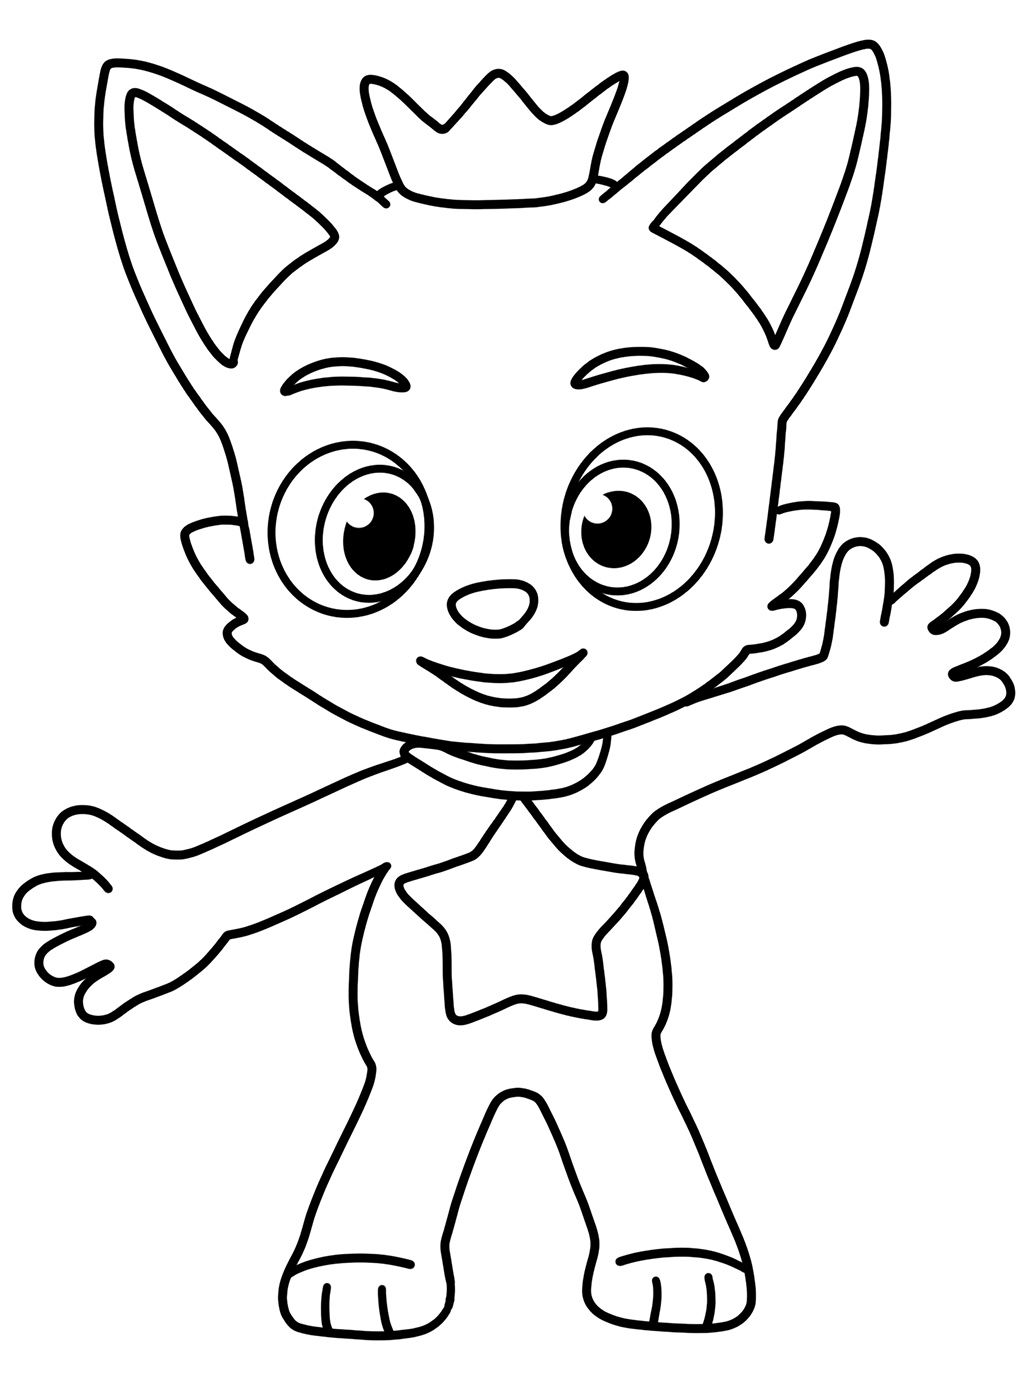 Pinkfong Coloring Pages For Kids Tinkerbell Coloring Pages Picasso Coloring Fairy Coloring Book